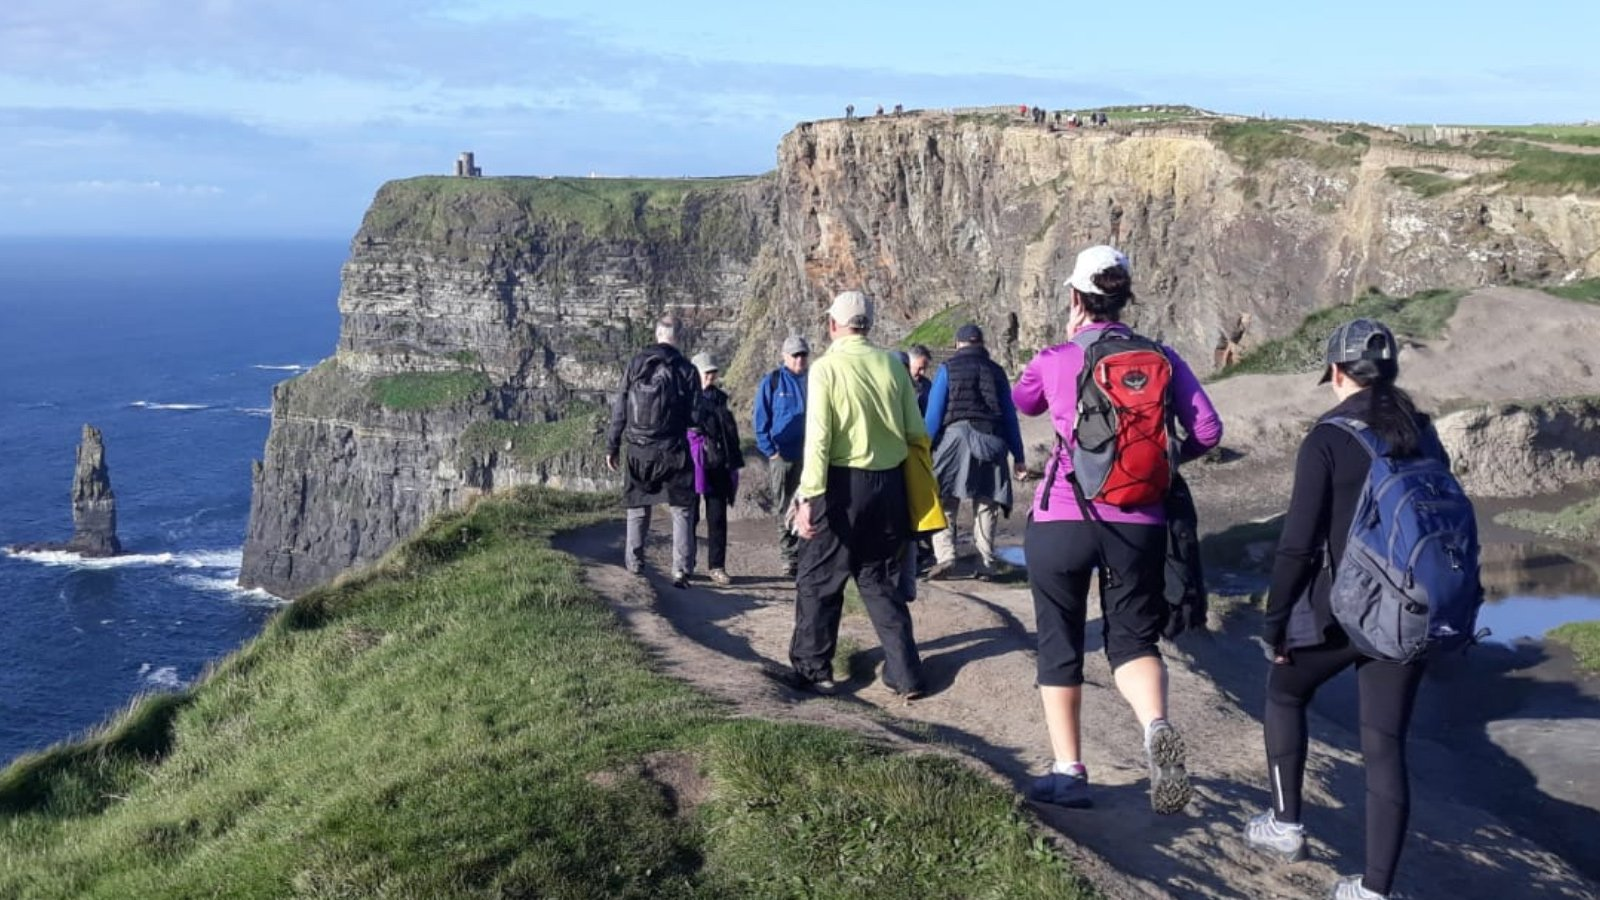 Vagabond guests set off on their Cliffs of Moher hike